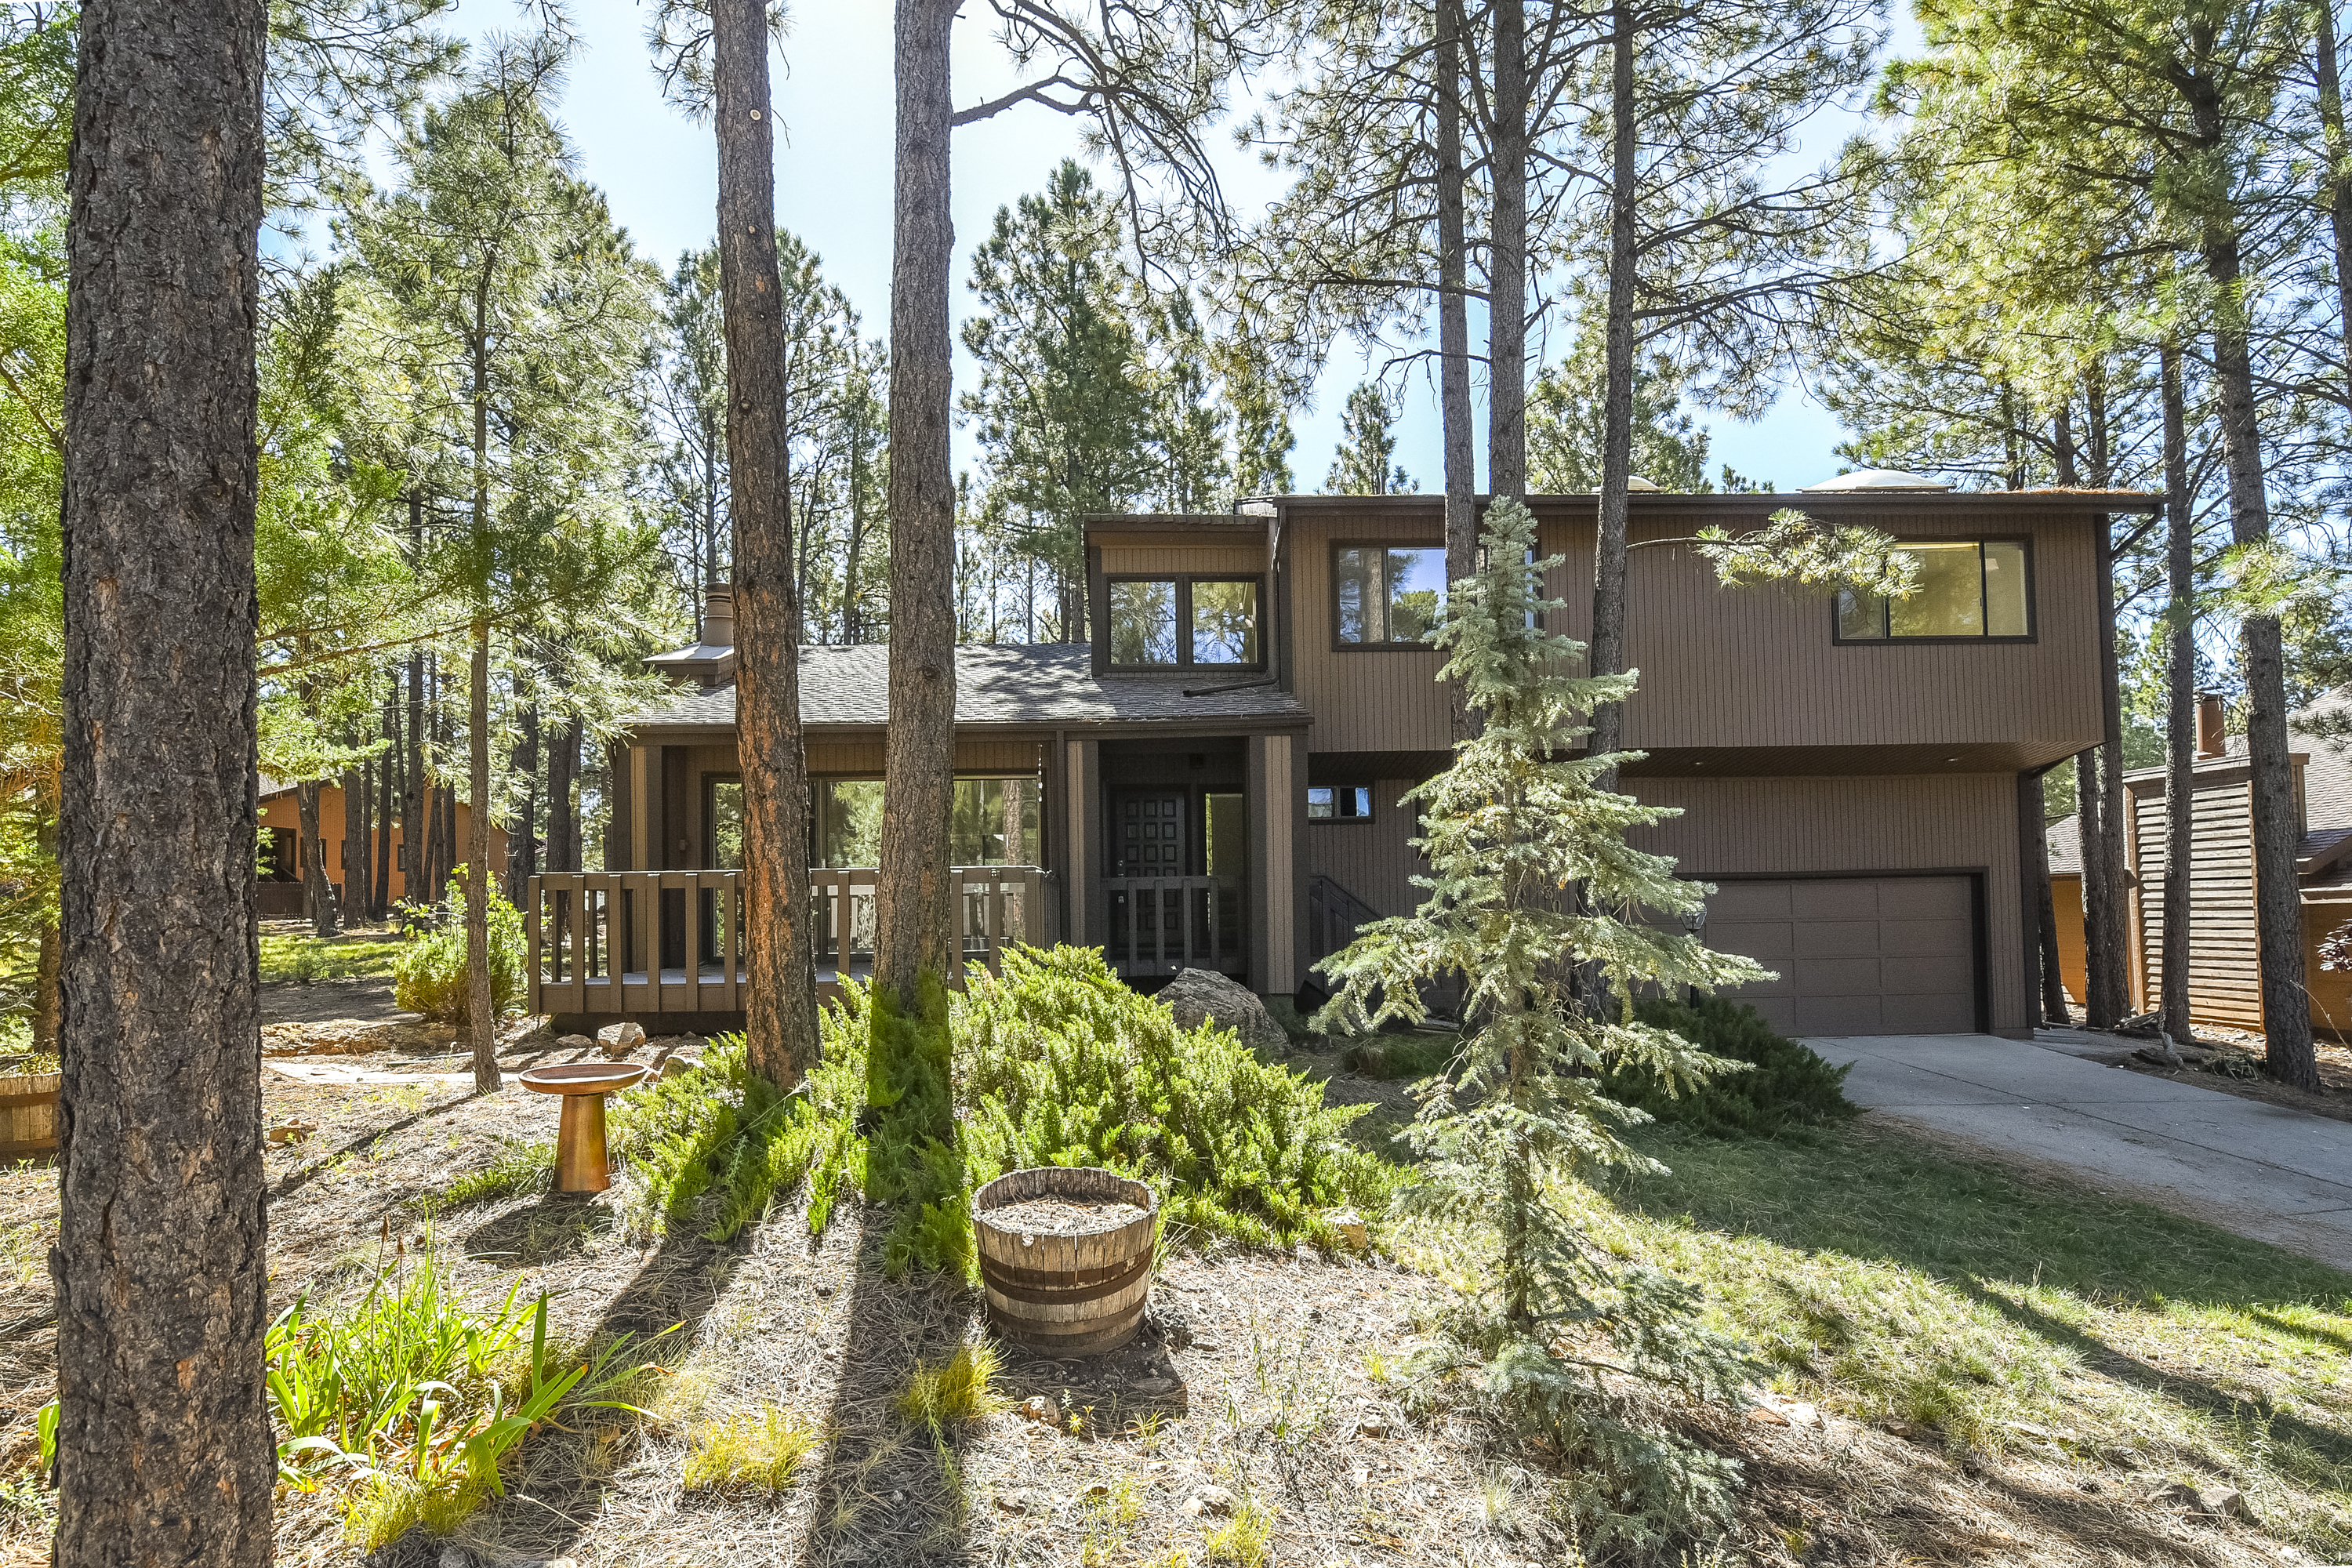 5030 E Chestnut Way – Sold!